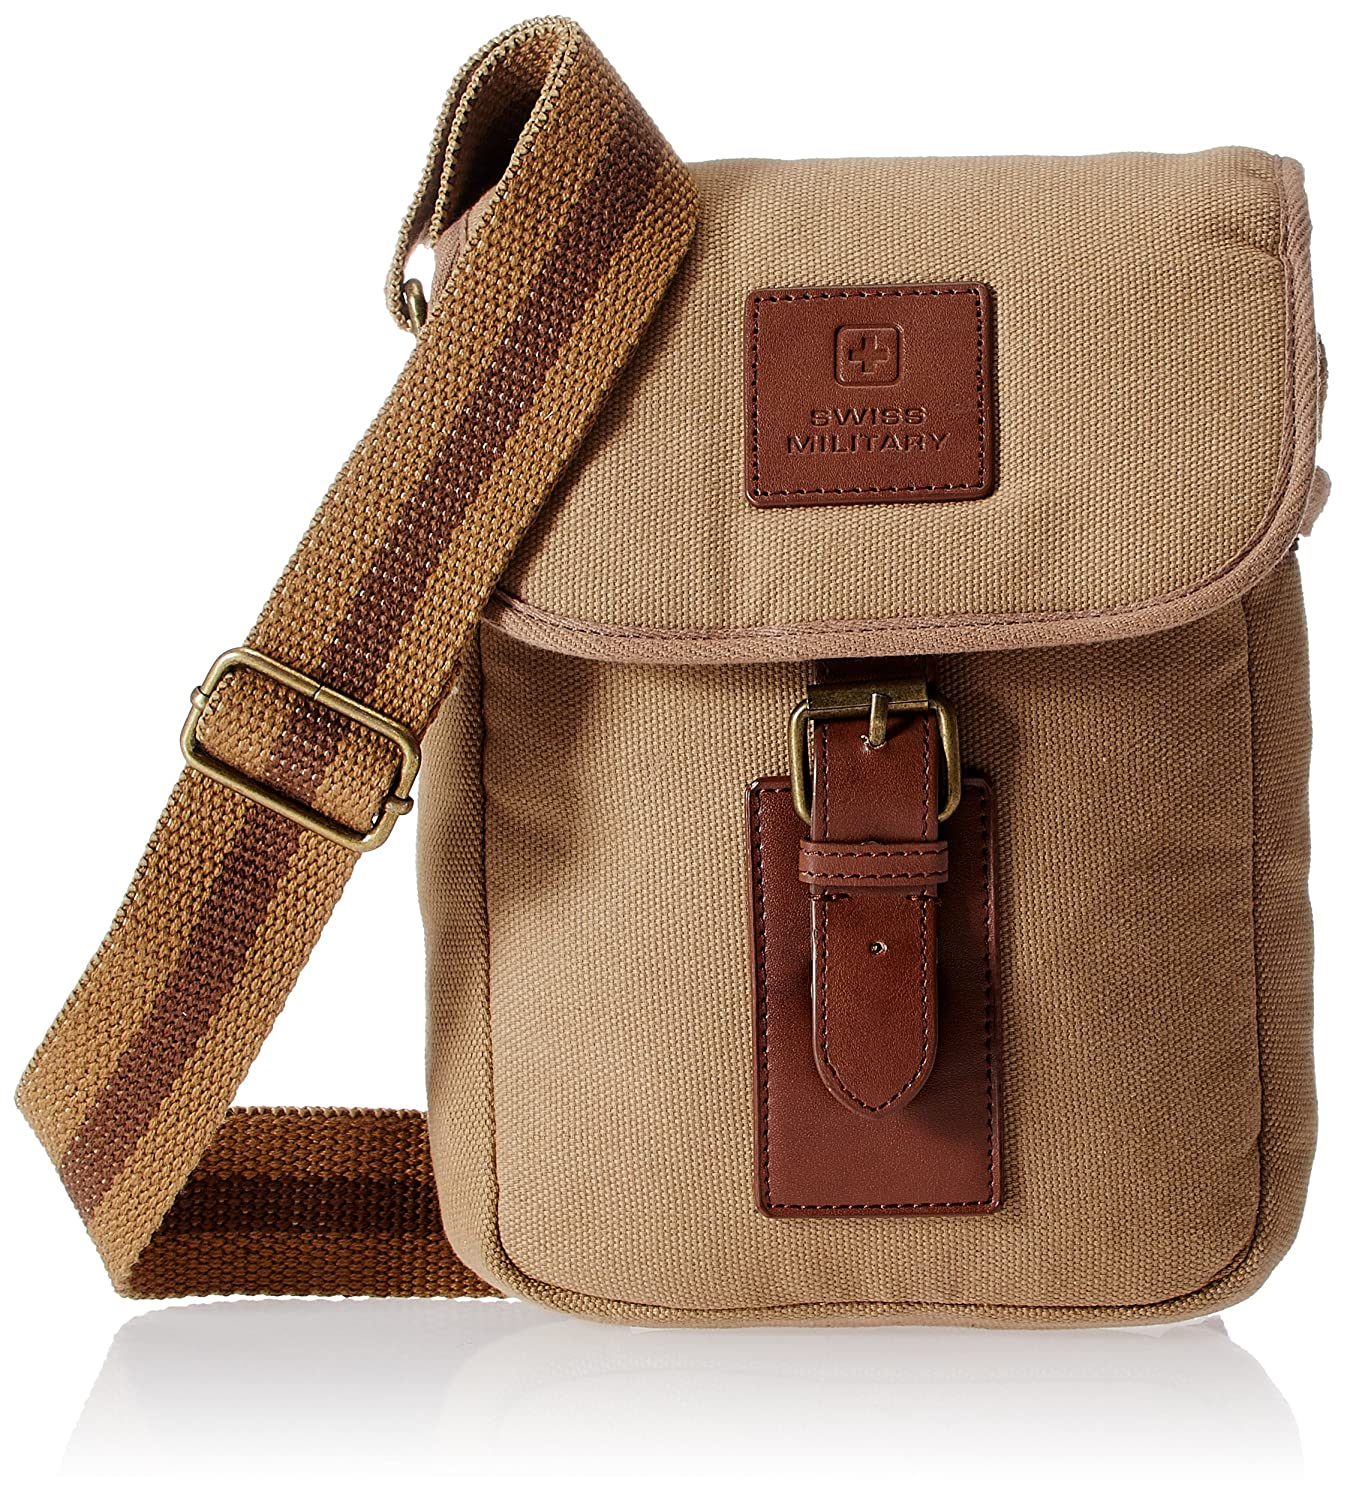 cb4a786da4c Bags For Girls  Buy Bags For Girls online at best prices in India ...